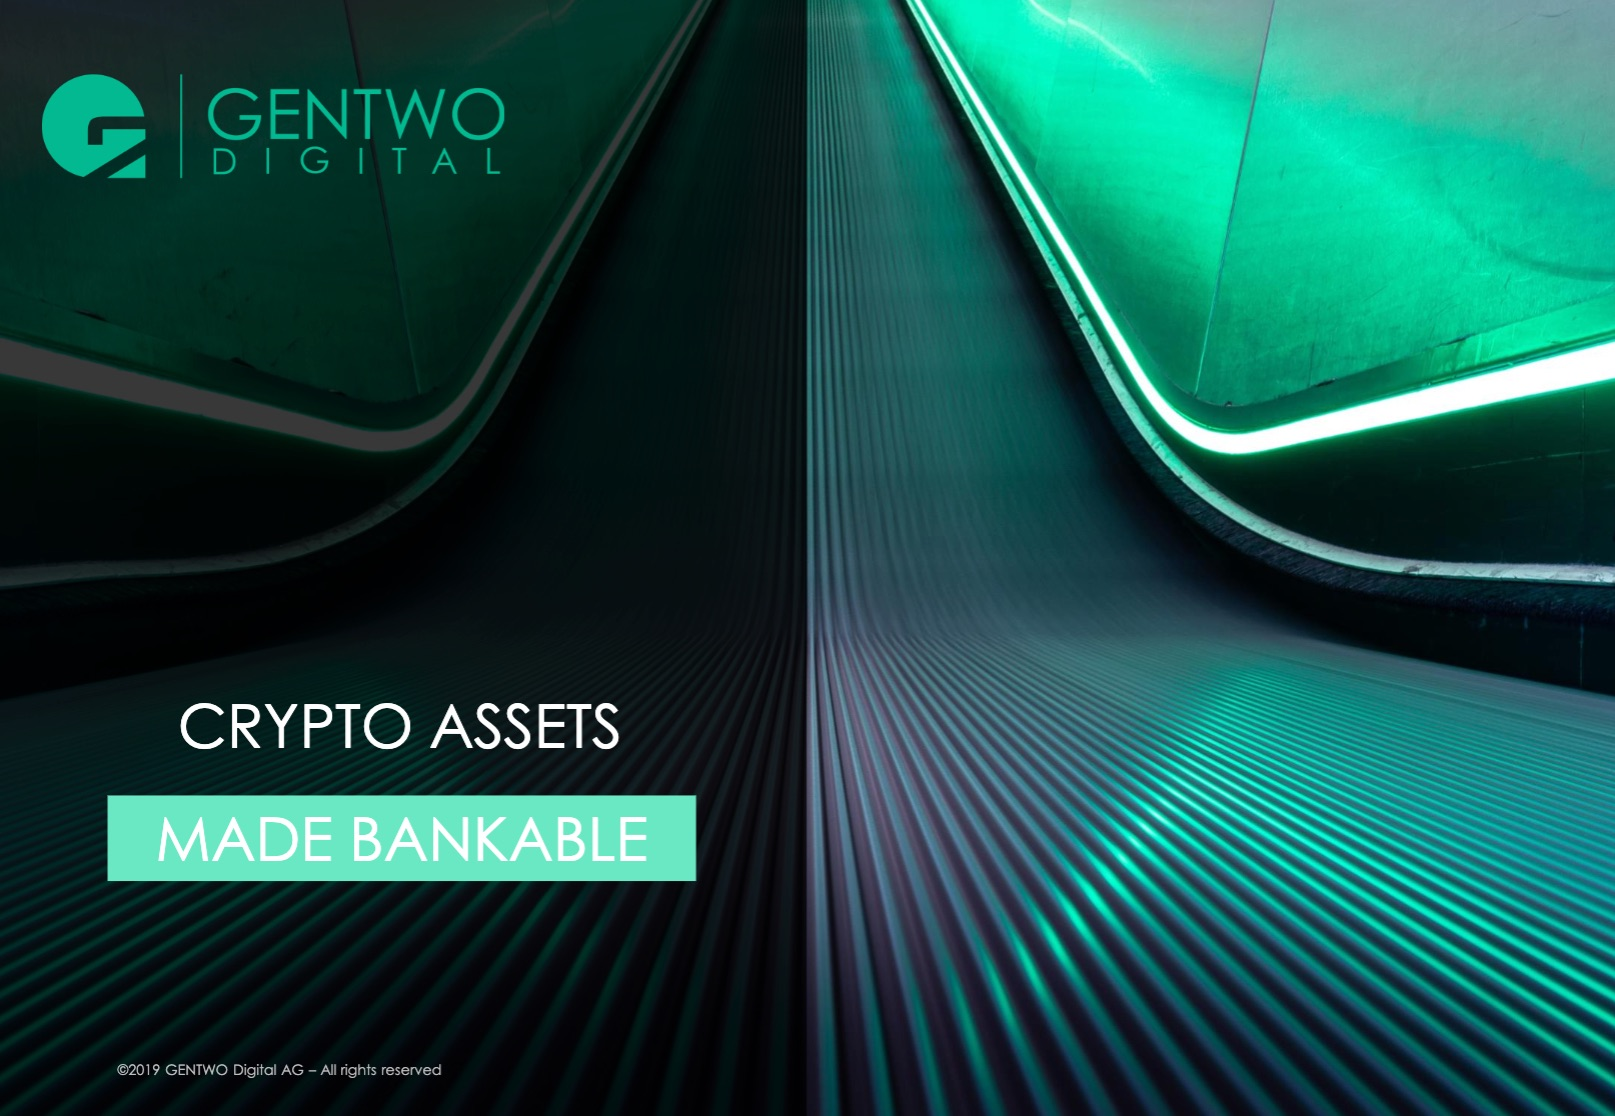 GENTWO Digital - Issuance Solution